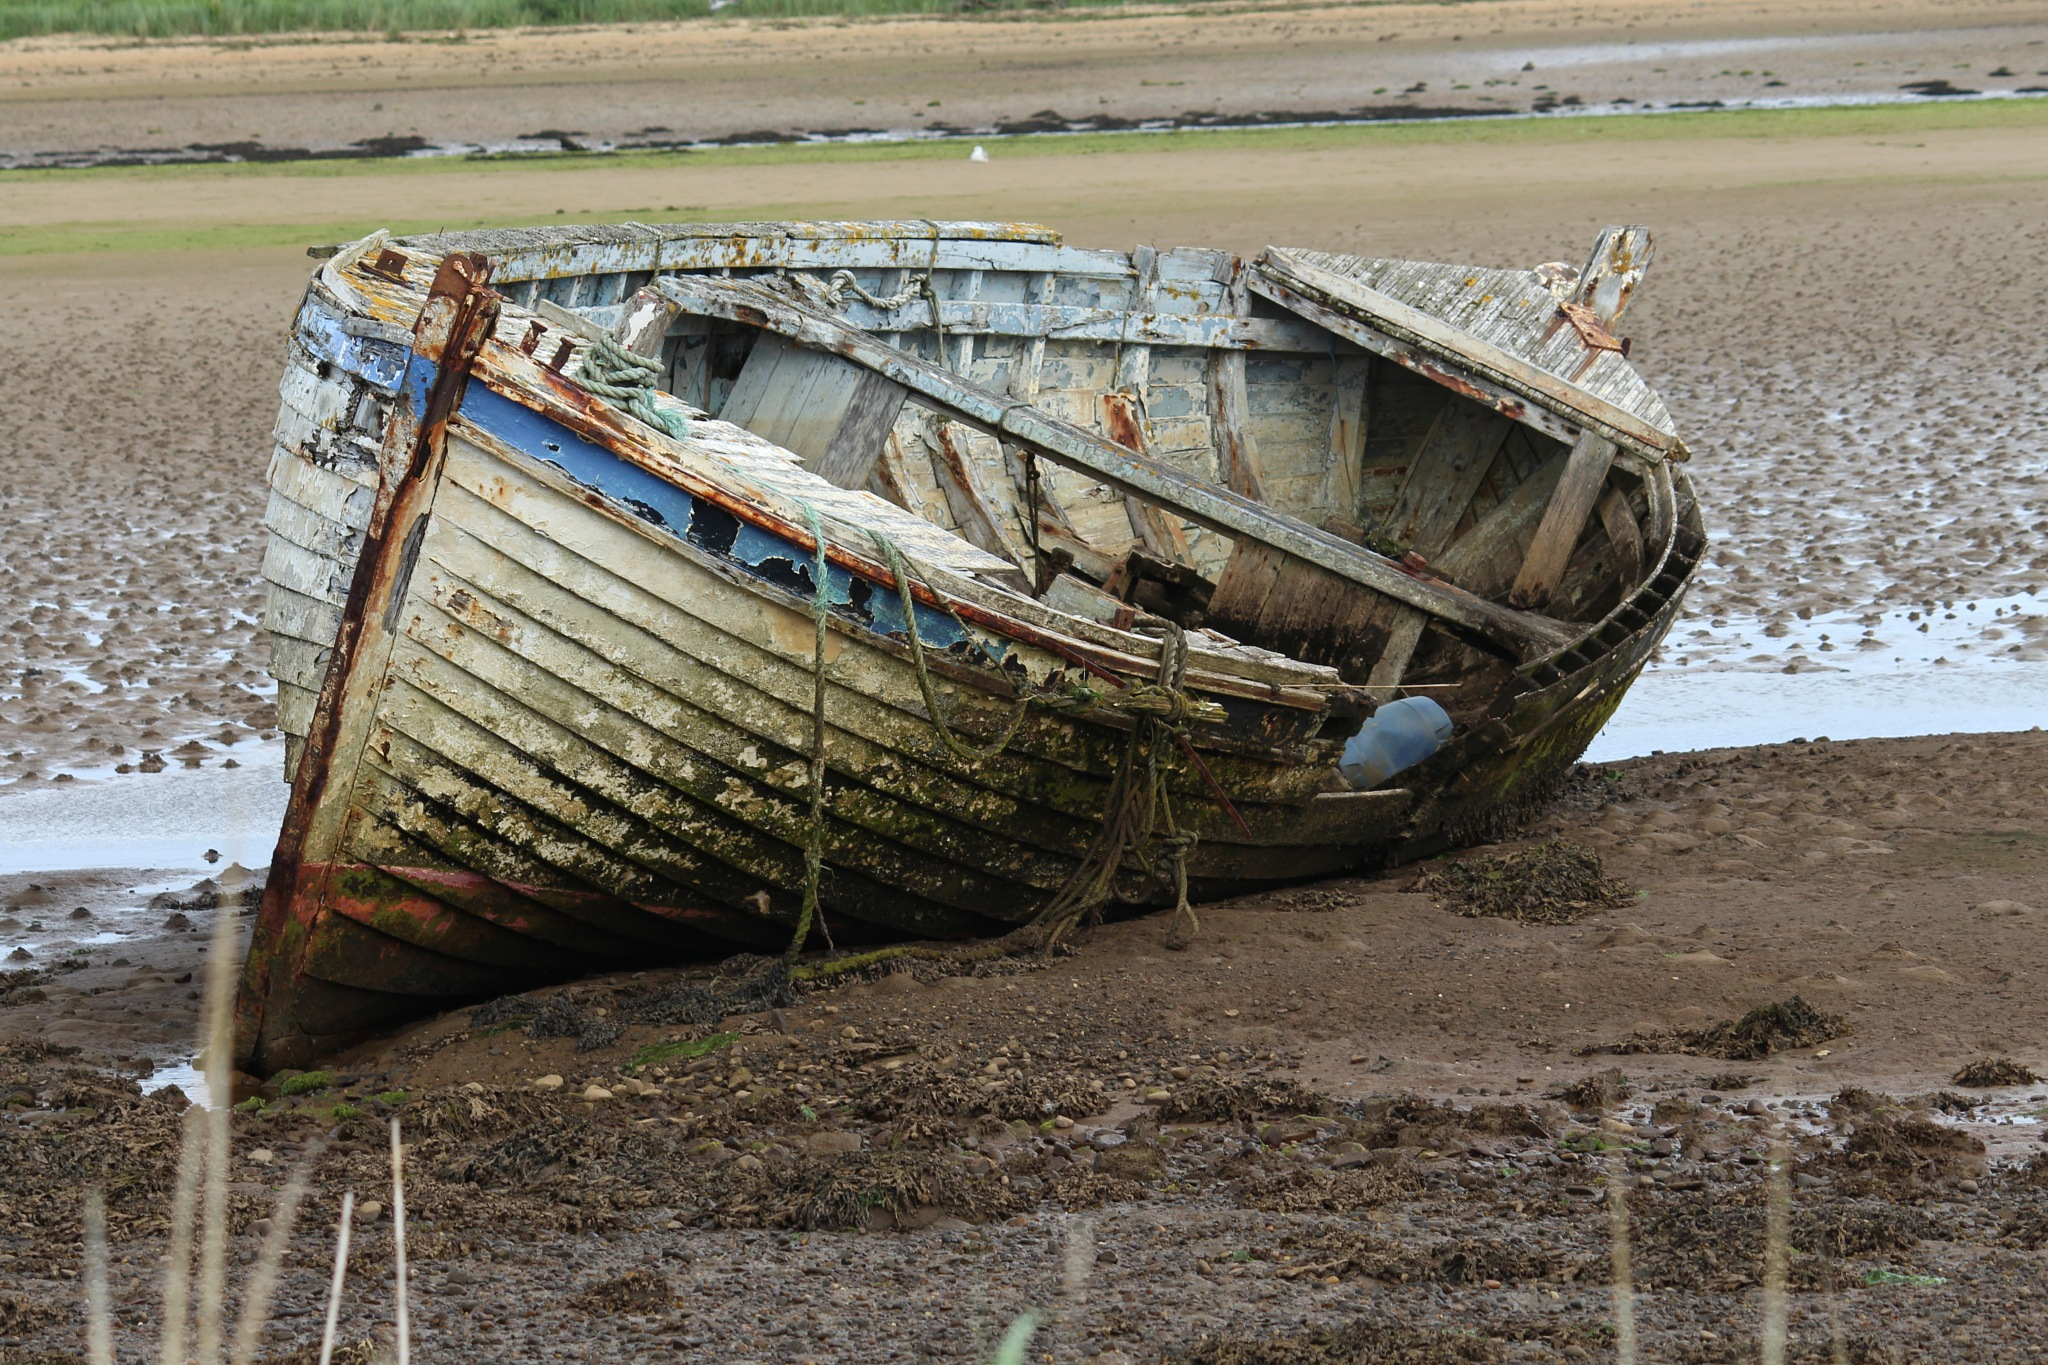 Close up of ruined boat by FrankieS